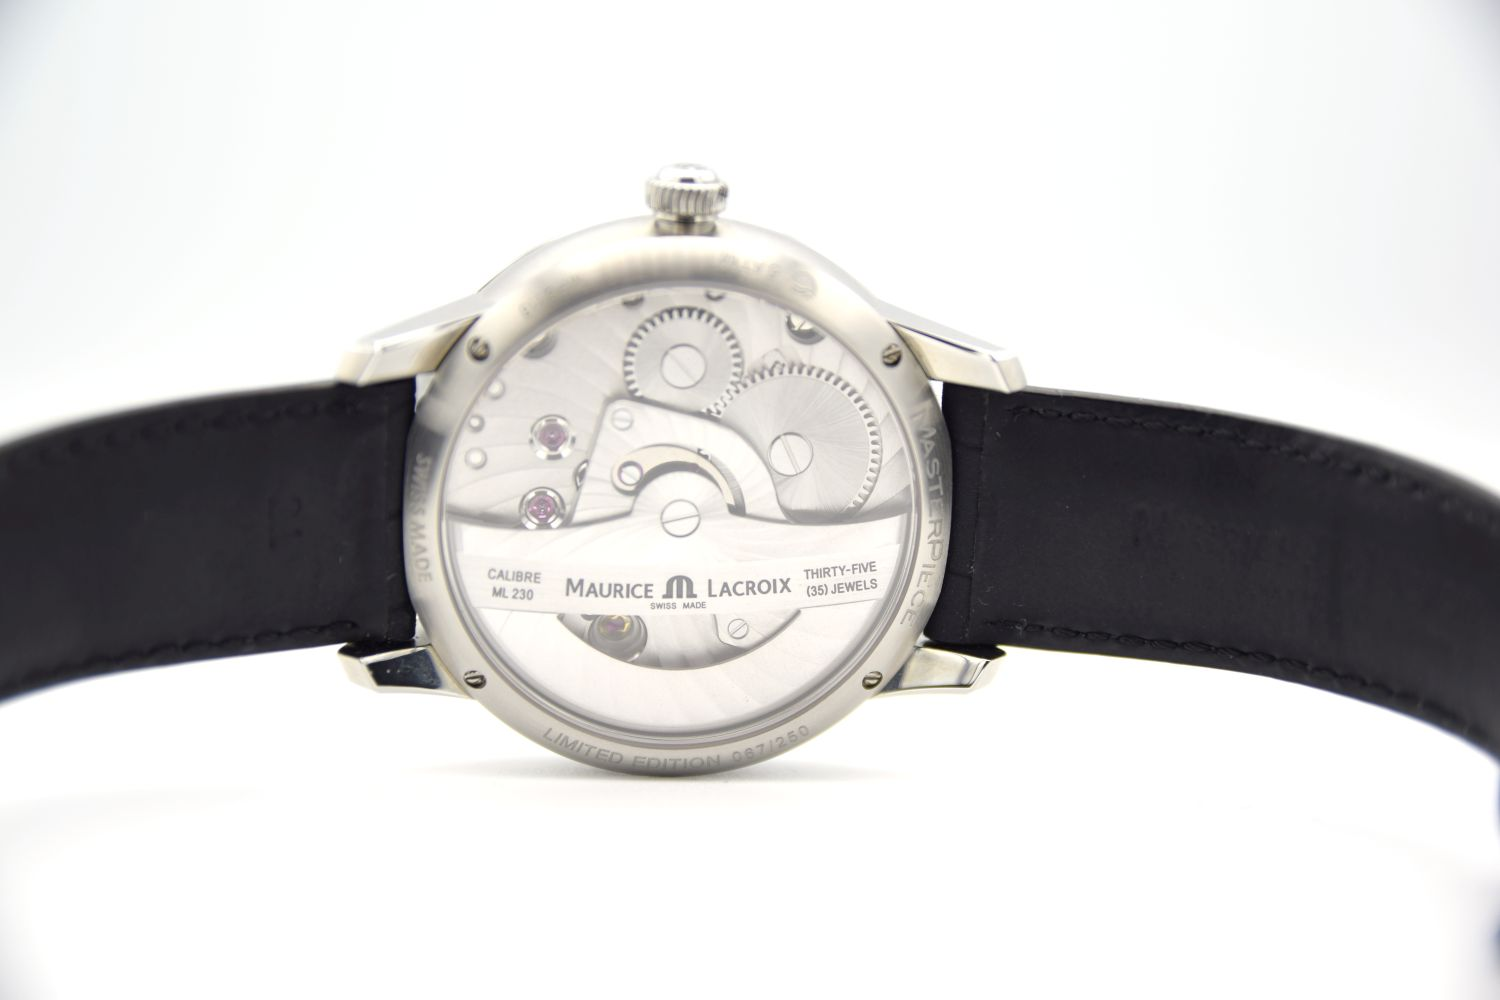 GENTLEMAN'S MAURICE LACROIX MATERPIECE GRAVITY LIMITED EDITION, AUTOMATIC MANUFACTURE ML230, - Image 4 of 8